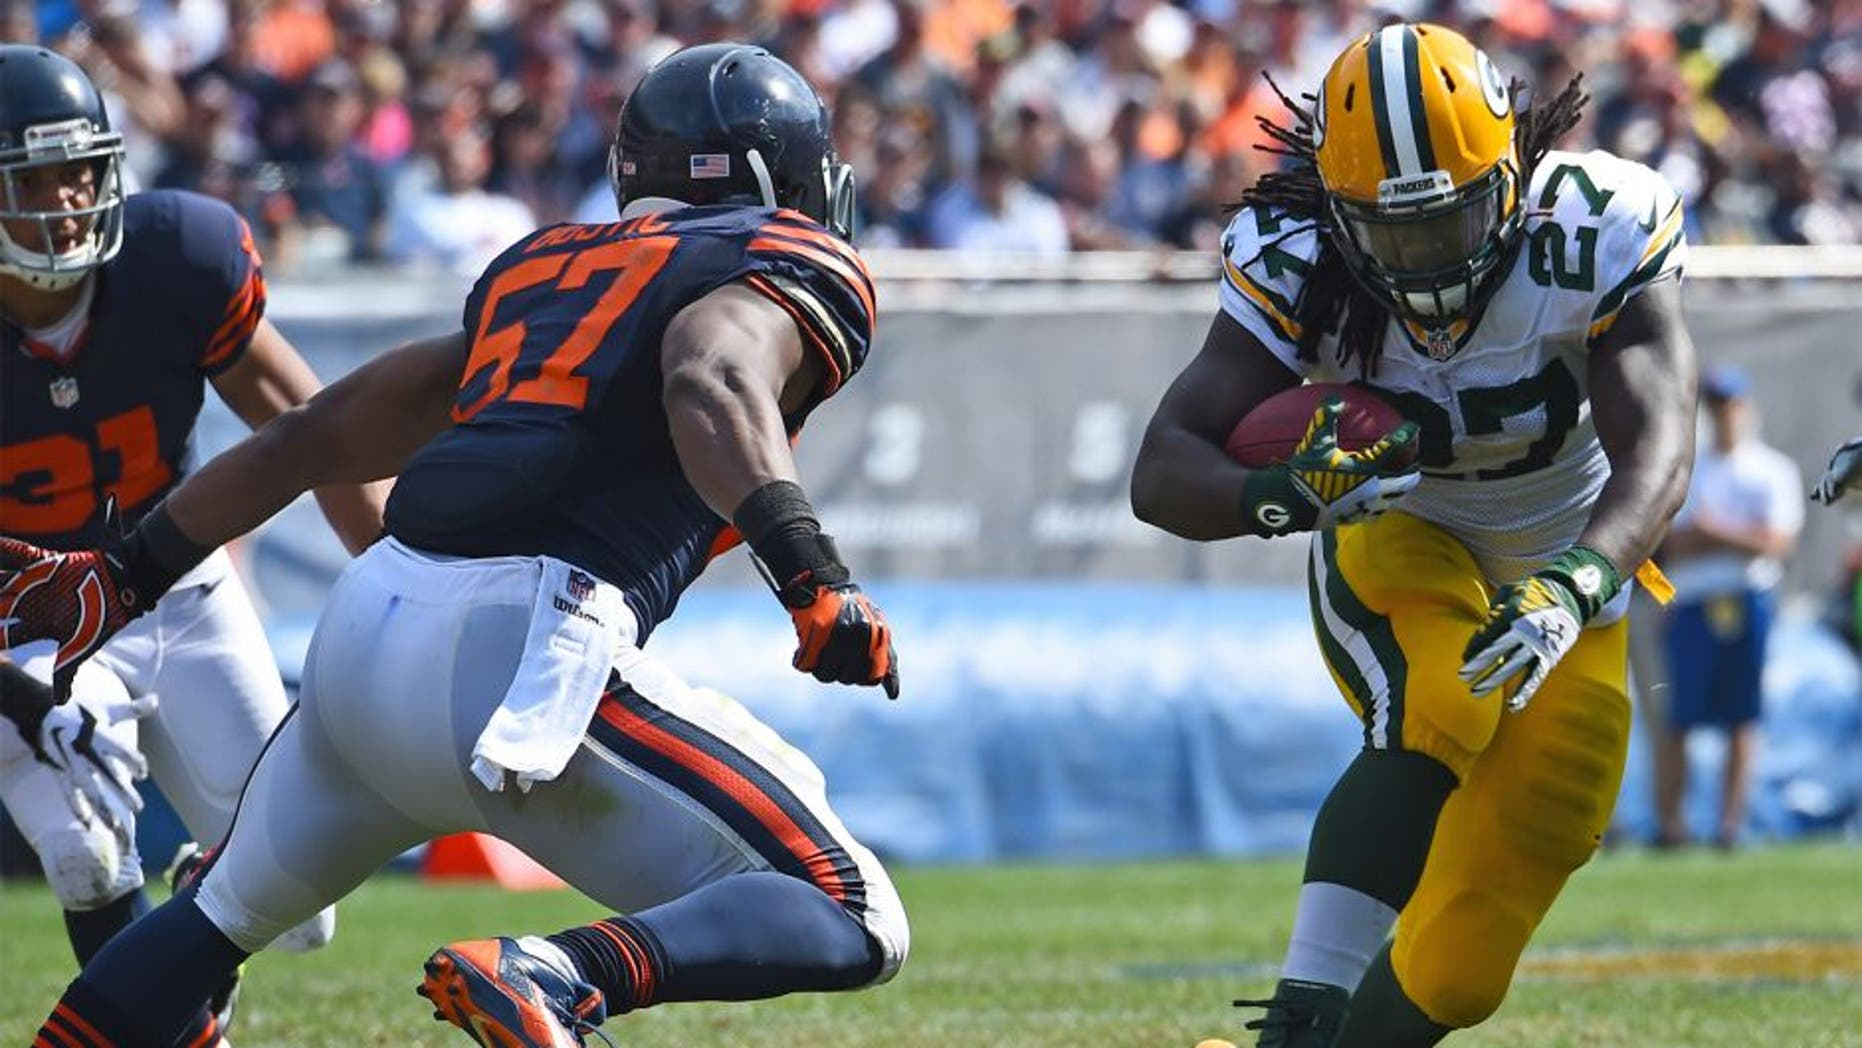 Sep 28, 2014; Chicago, IL, USA; Green Bay Packers running back Eddie Lacy (27) rushes the ball against Chicago Bears inside linebacker Jon Bostic (57) during the second half at Soldier Field. The Green Bay Packers defeats the Chicago Bears 38-17. Mandatory Credit: Mike DiNovo-USA TODAY Sports